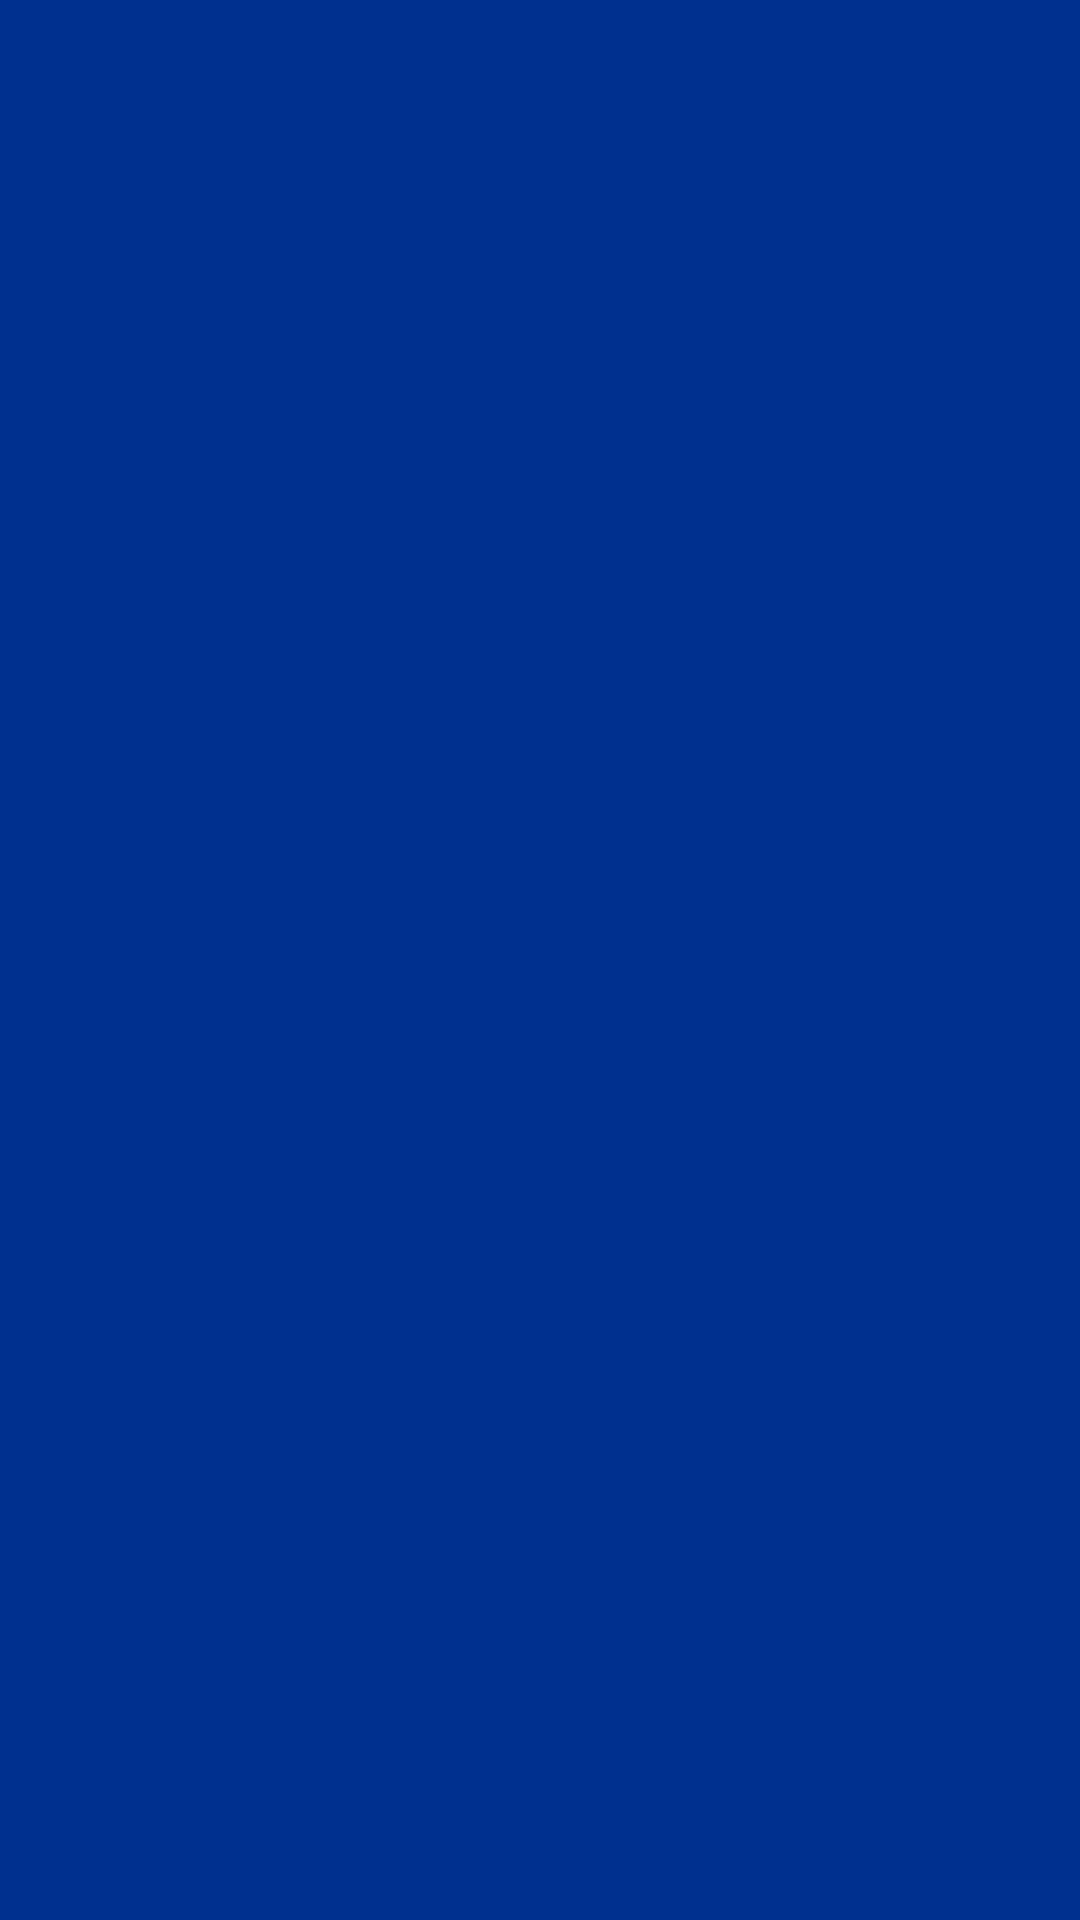 Plain Blue Wallpaper For Android